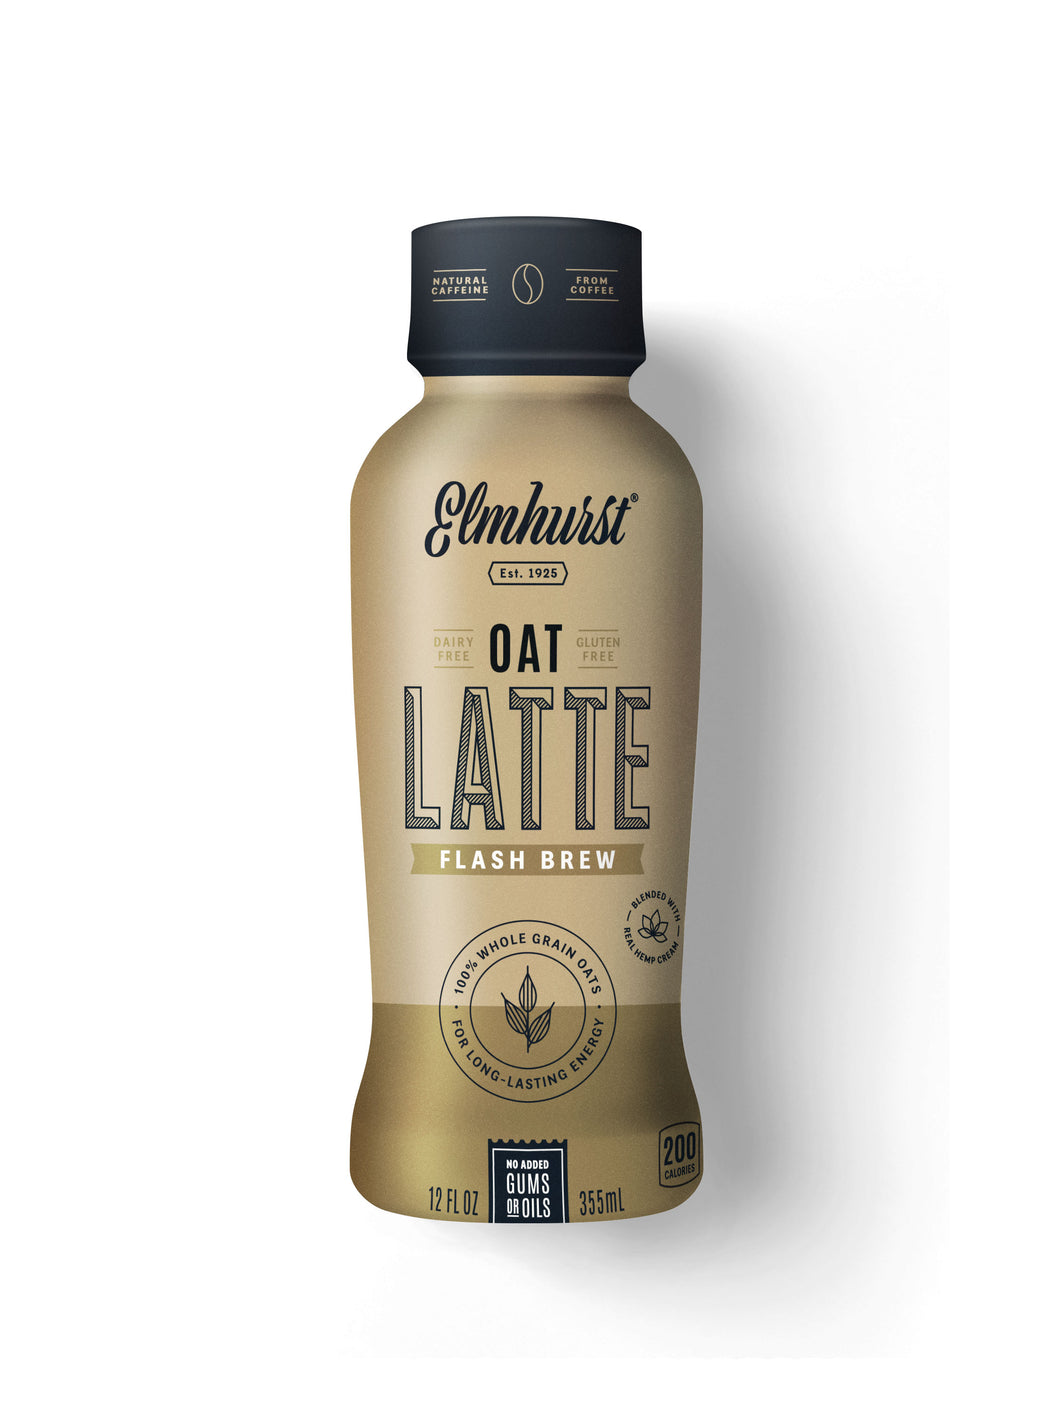 Elmhurst Oat Latte - Flash Brew, 12oz Single-Serve